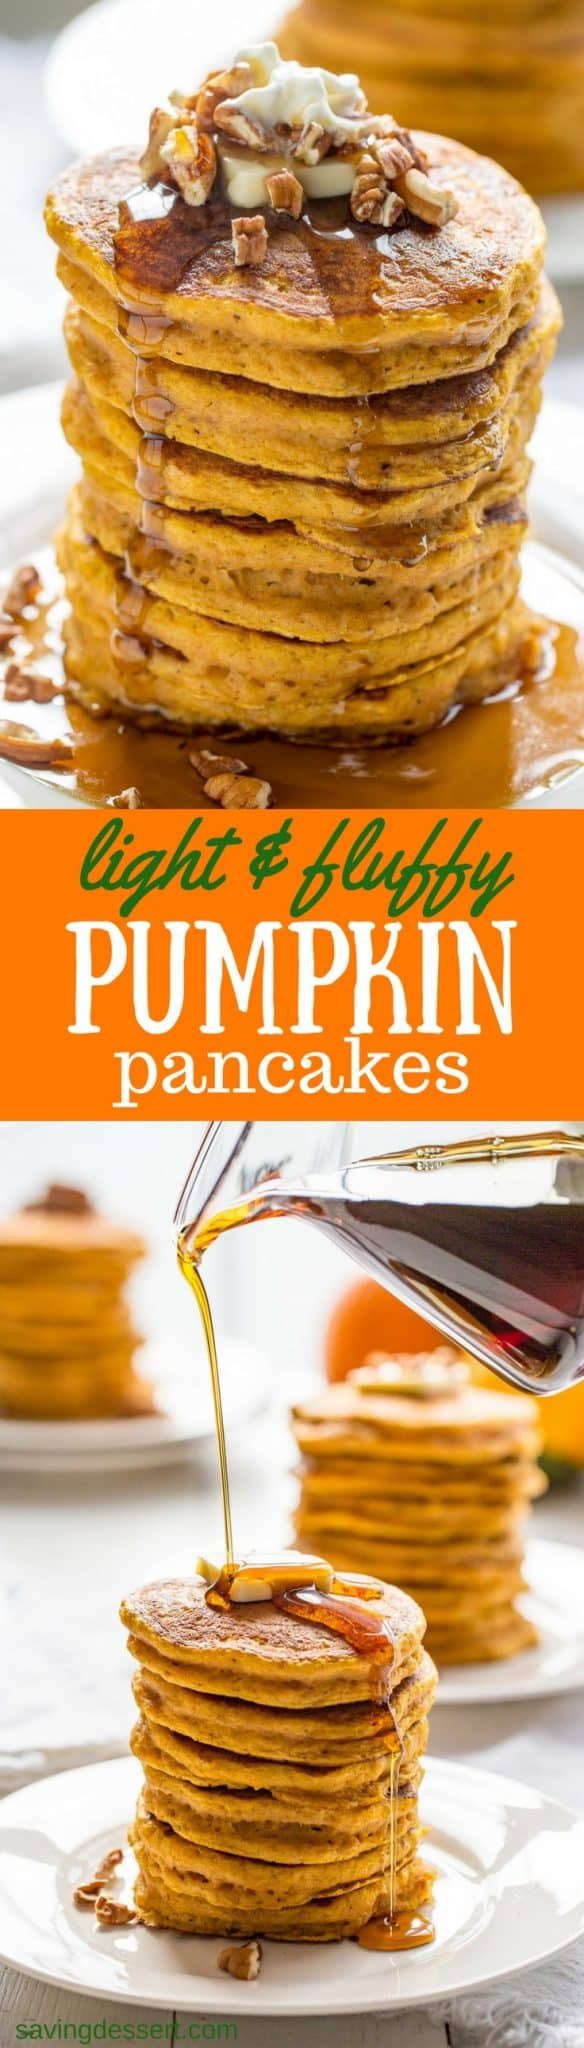 The Best Pumpkin Pancakes - thick, light and super fluffy, our Pumpkin Pancakes are well spiced, lightly sweet and easy to make too! savingdessert.com #pumpkin #pancakes #pumpkinpiespice #pumpkinpancakes